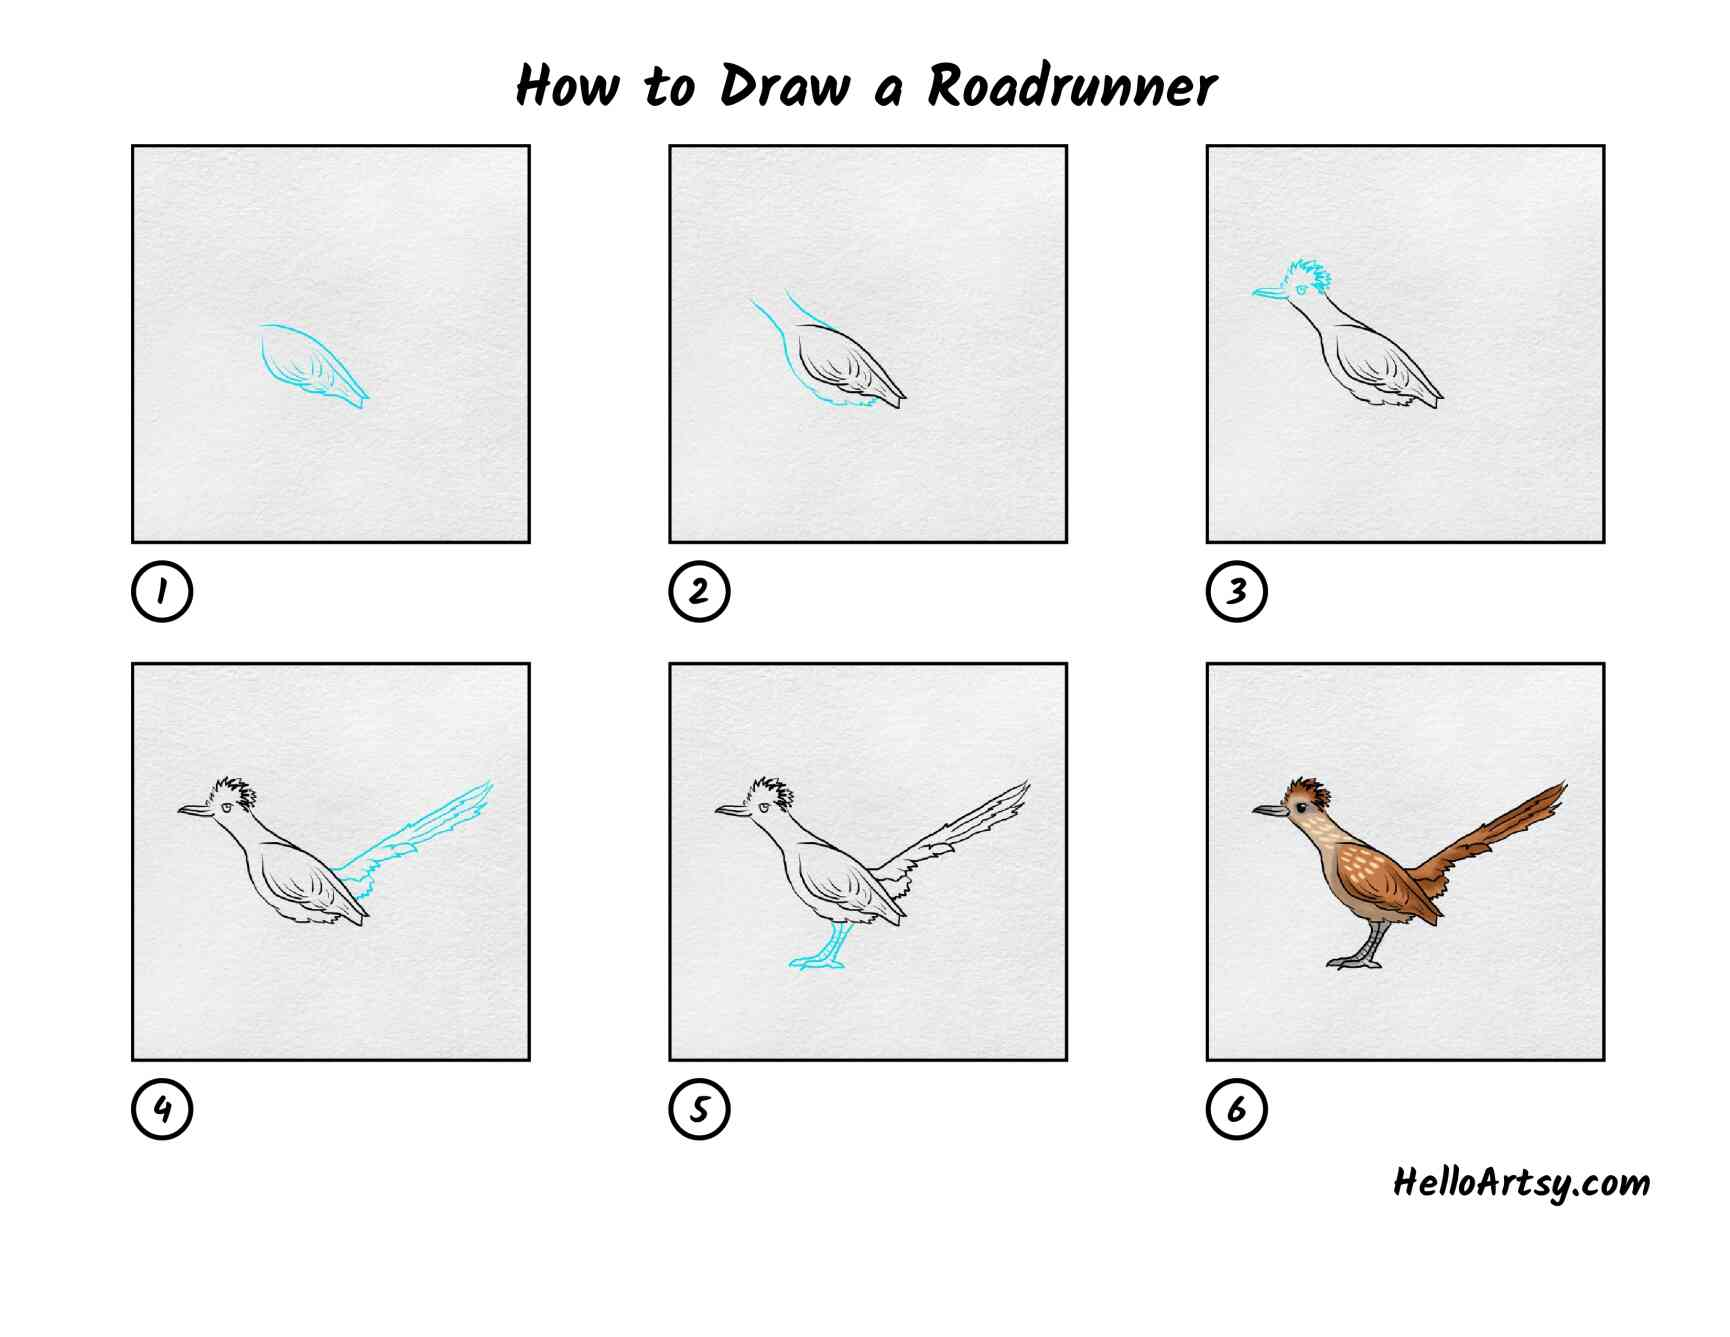 How To Draw A Roadrunner: All Steps